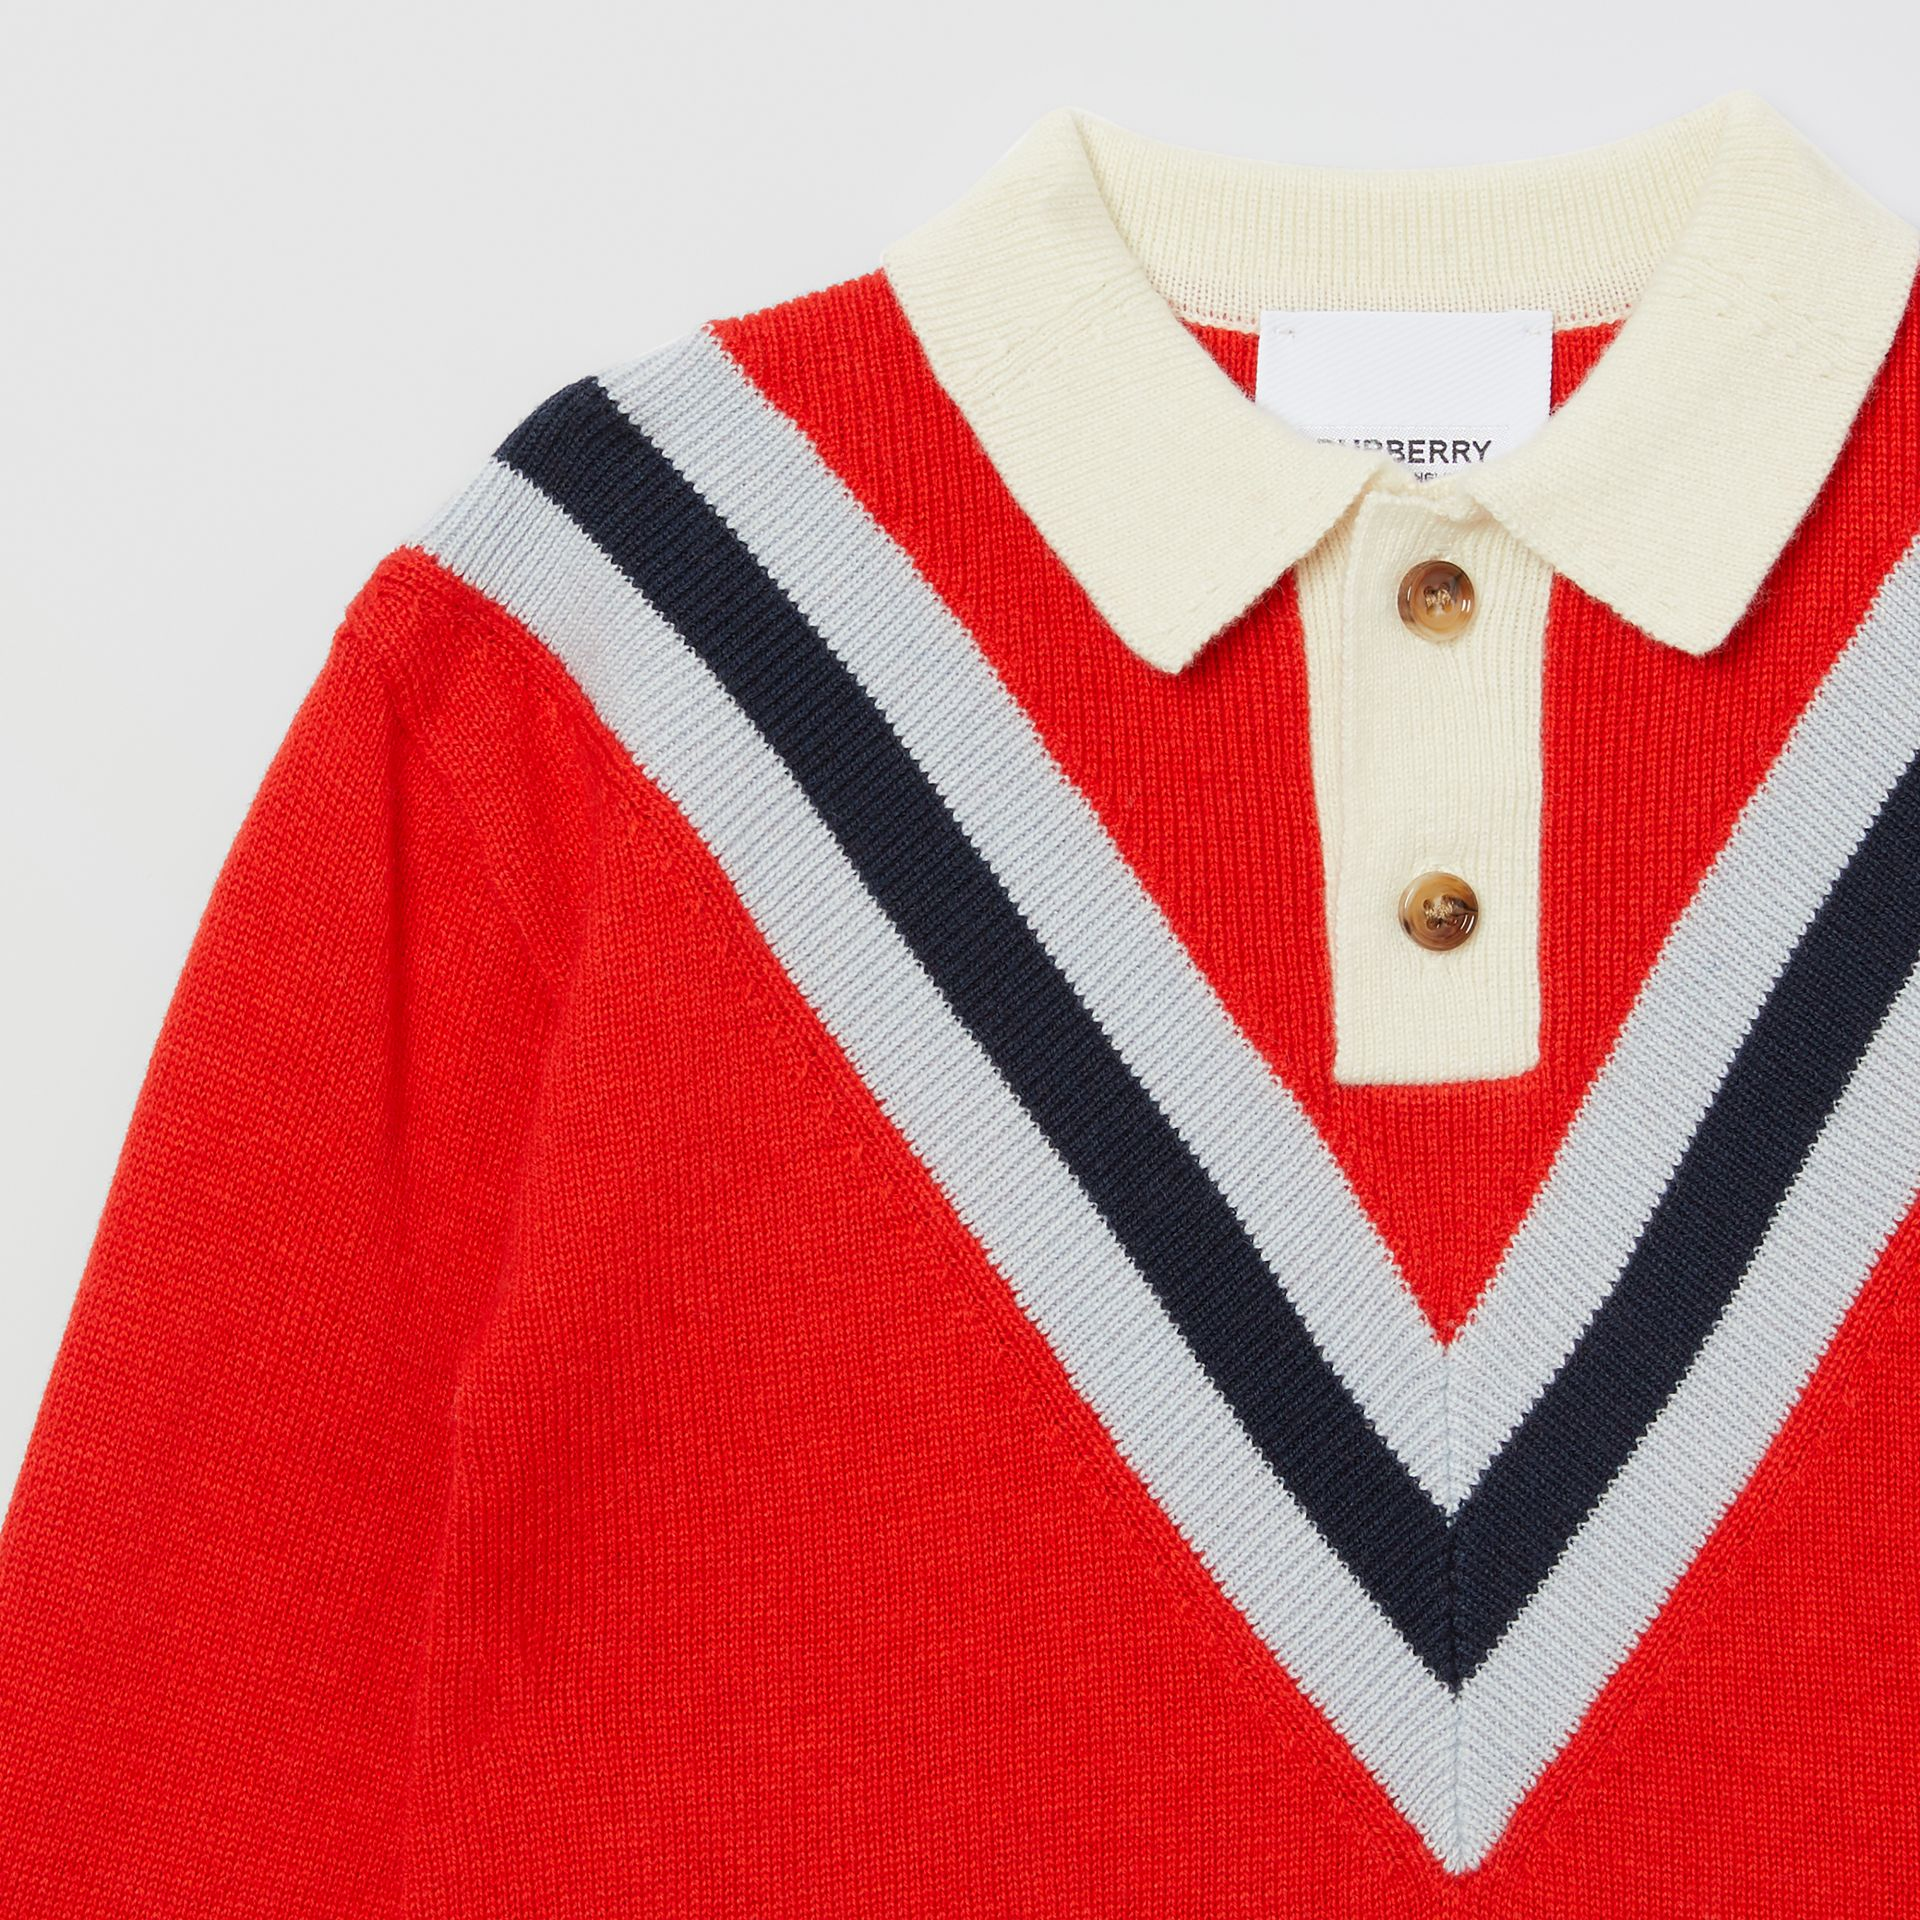 Long-sleeve Knit Cashmere Cotton Polo Shirt in Bright Red - Children | Burberry United Kingdom - gallery image 3